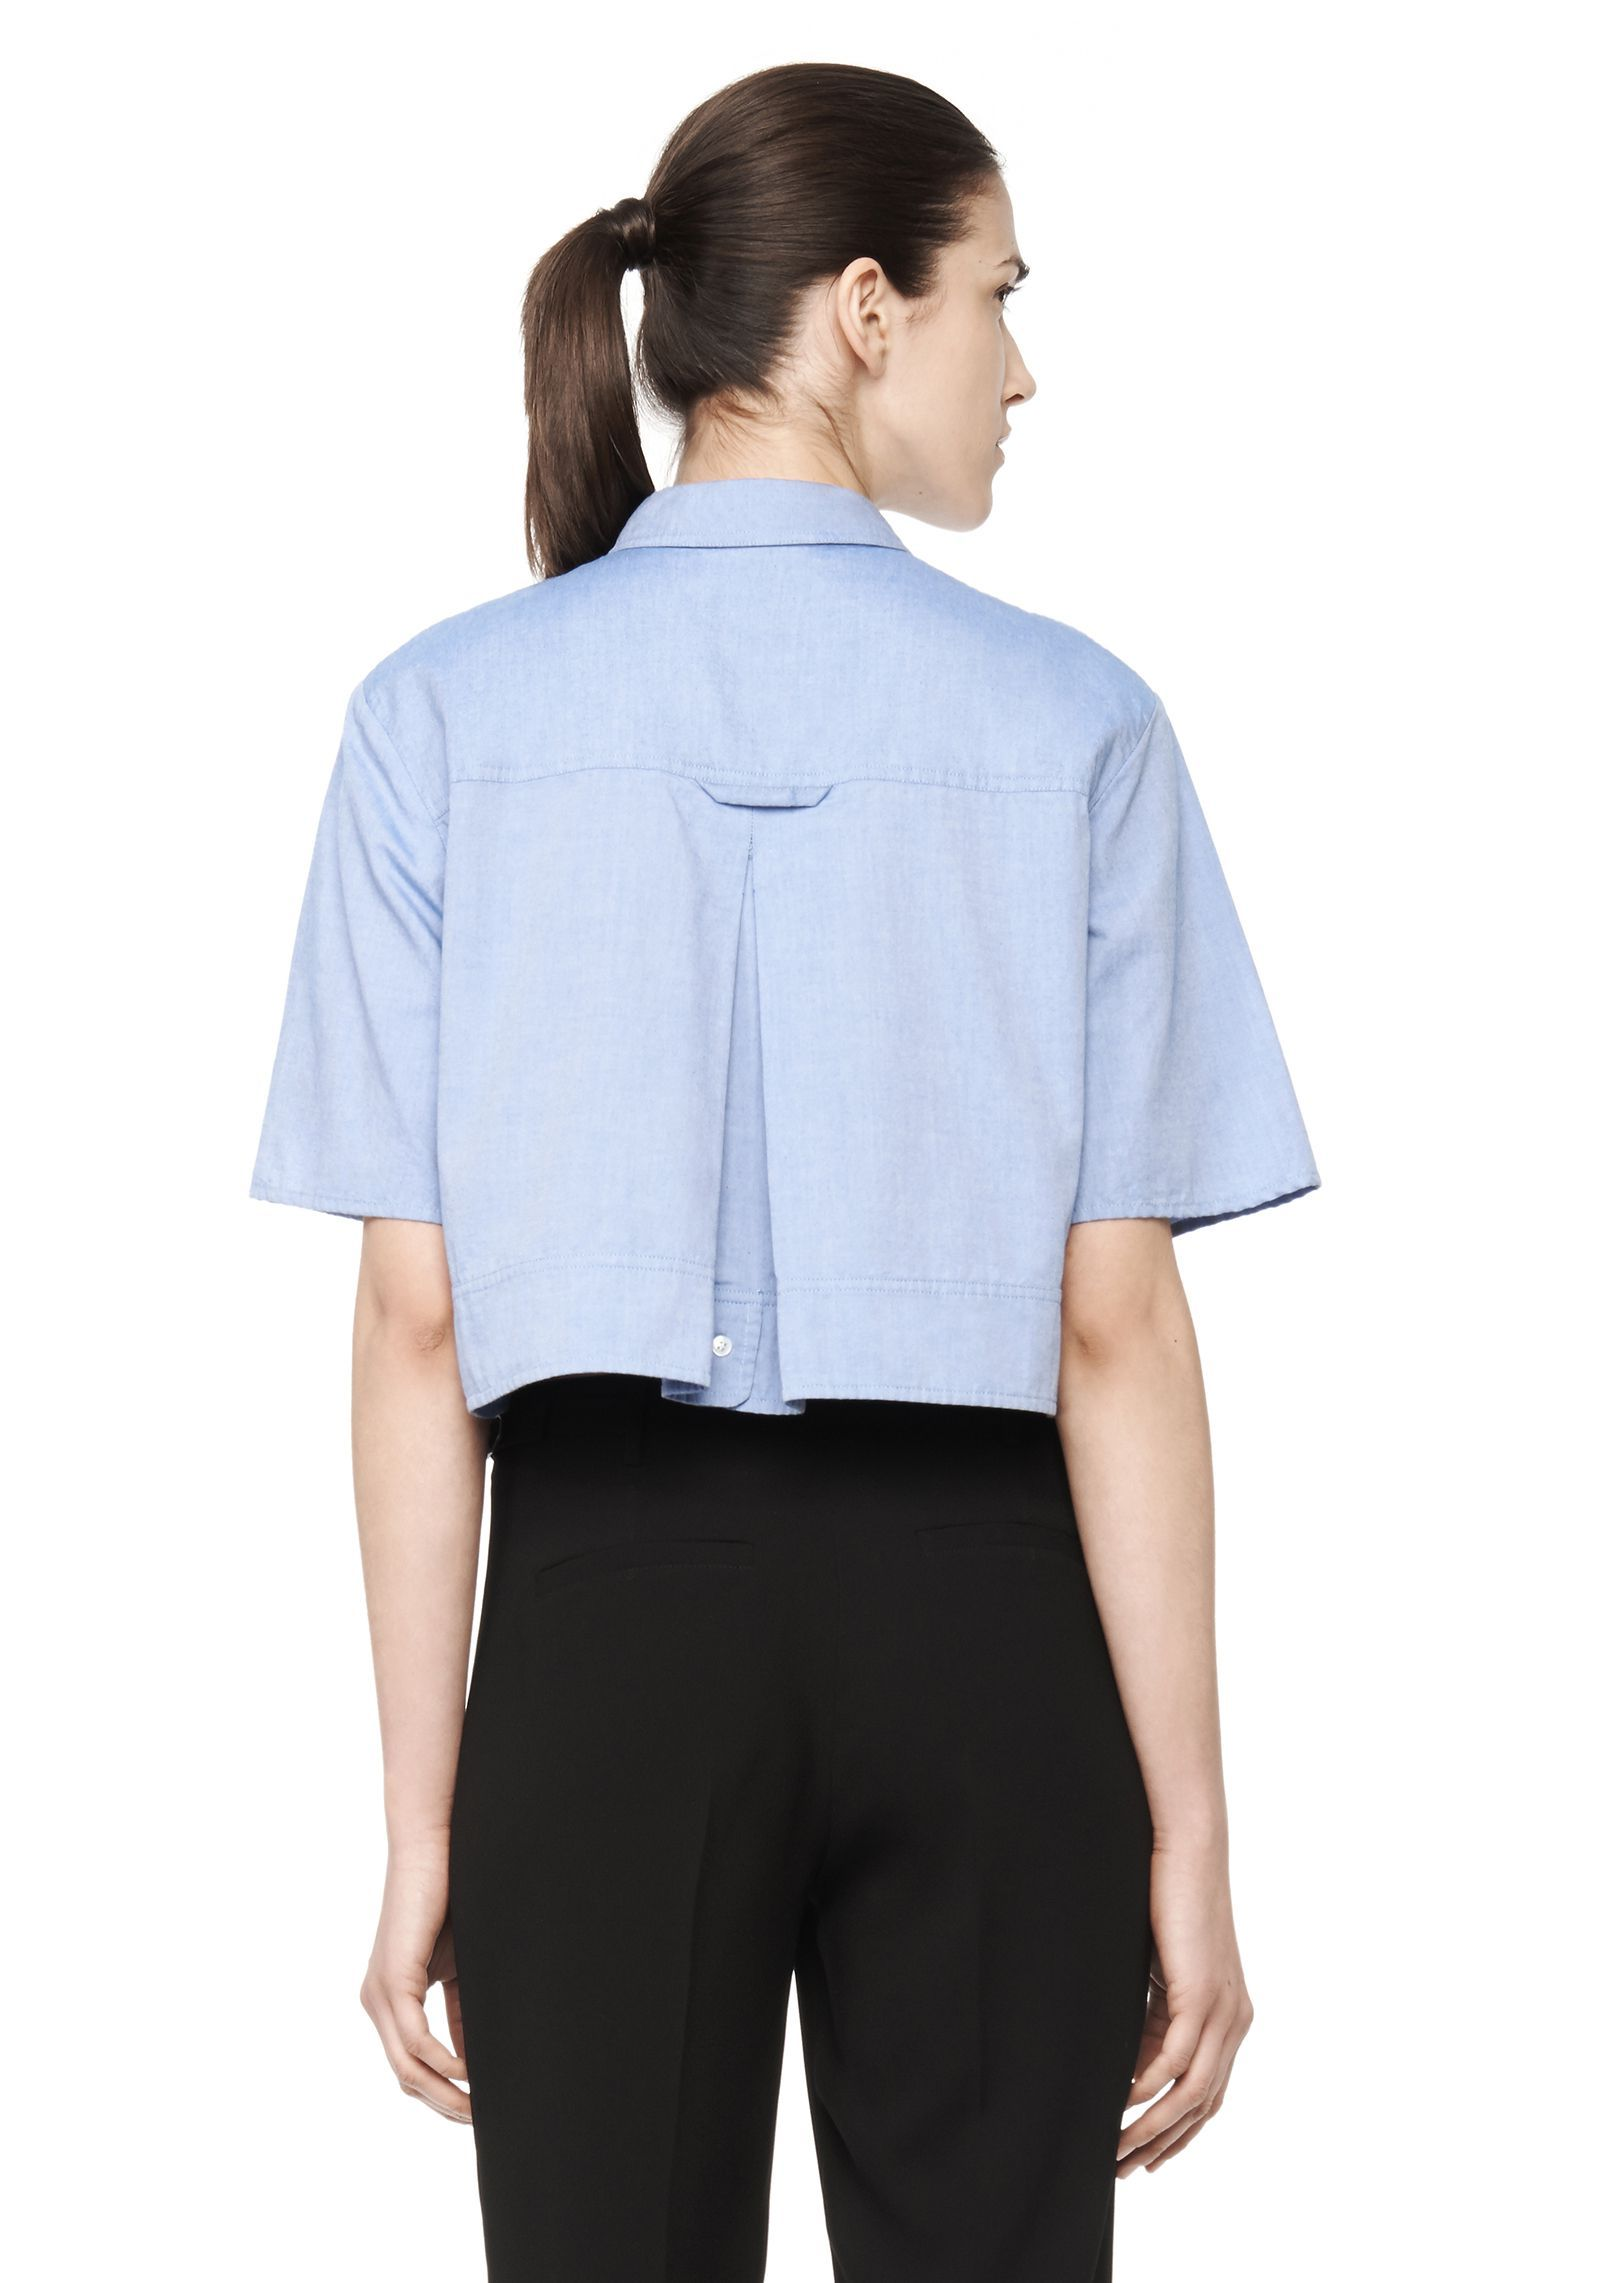 ca074a896249b CROPPED COLLARED OXFORD SHIRT - Women Tops - Alexander Wang Official Site